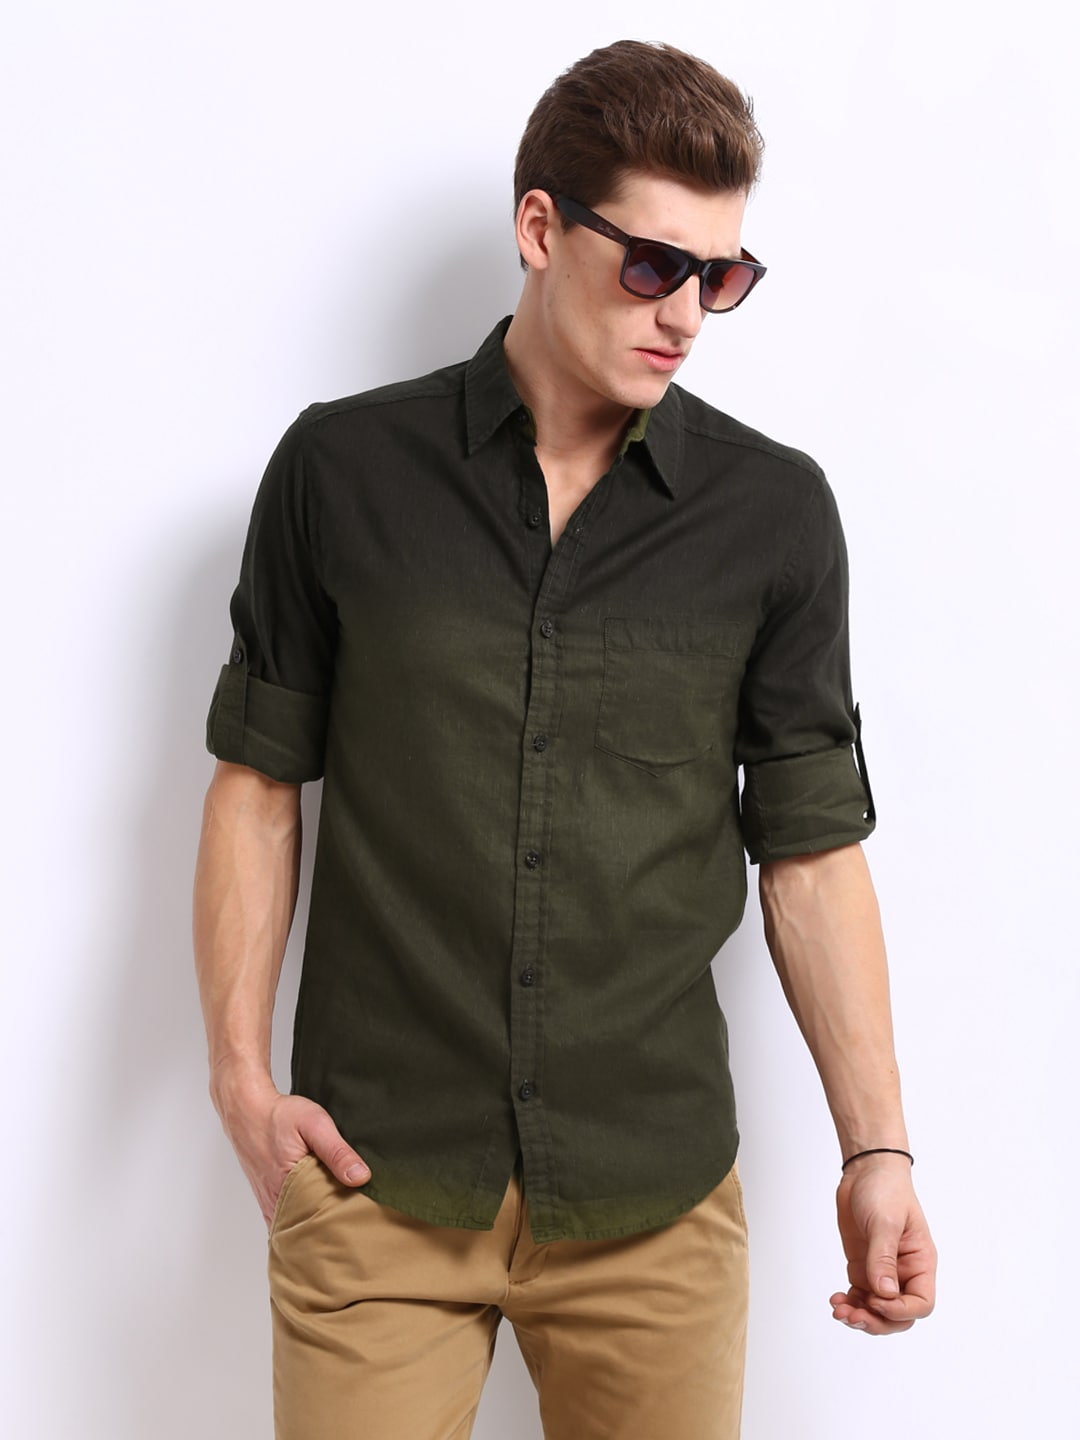 Olive Green Shirt Mens